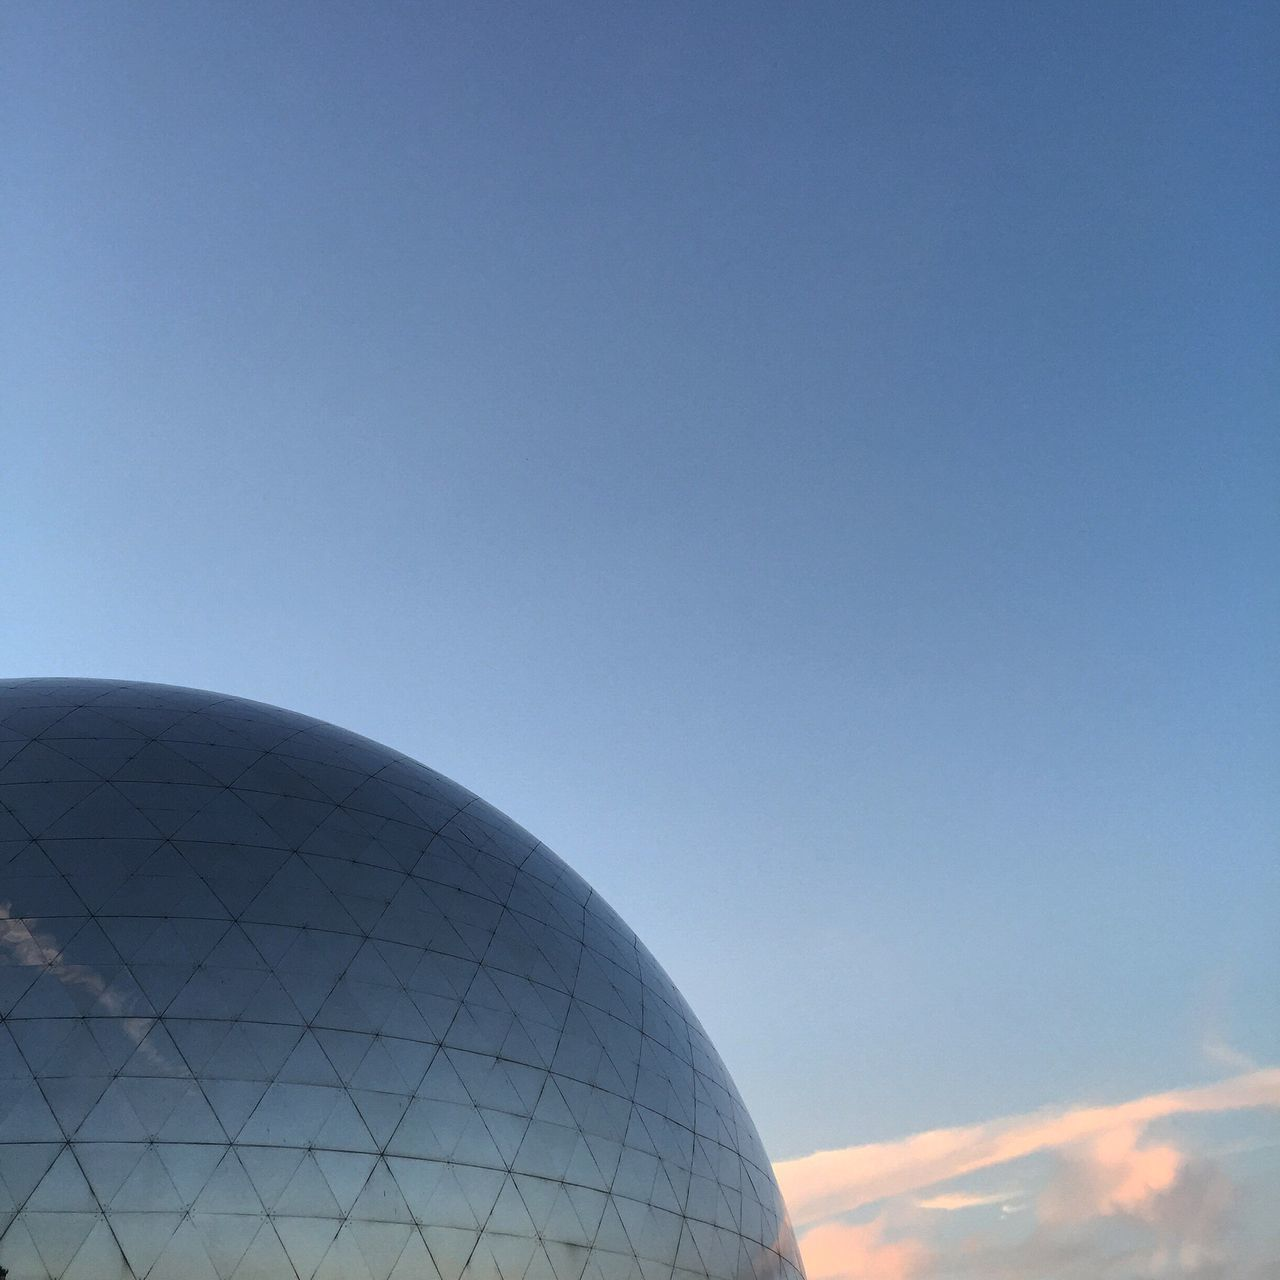 dome, architecture, blue, built structure, no people, radar, day, clear sky, outdoors, sky